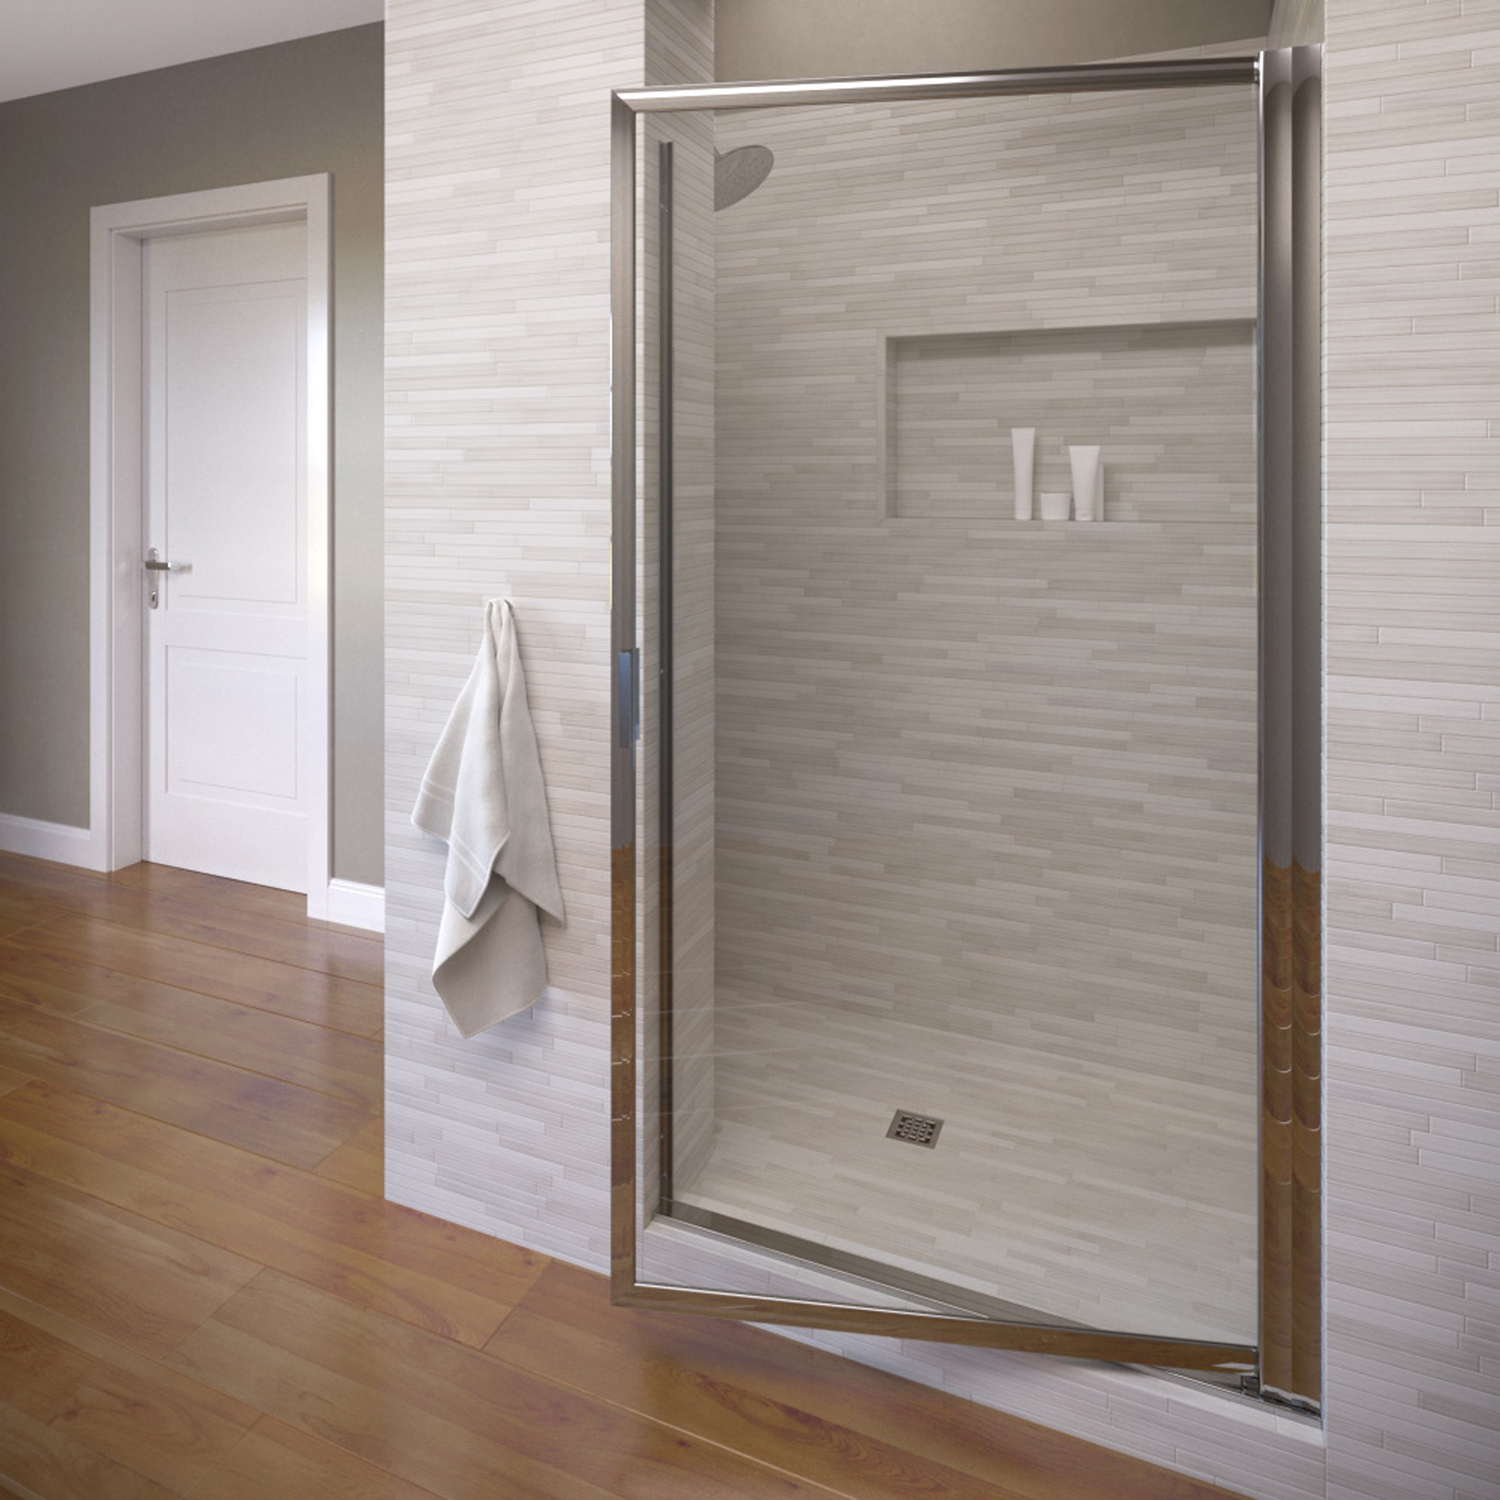 "Basco 100-10CL 36"" Deluxe Pivot Swing Door with Clear Glass - Silver"